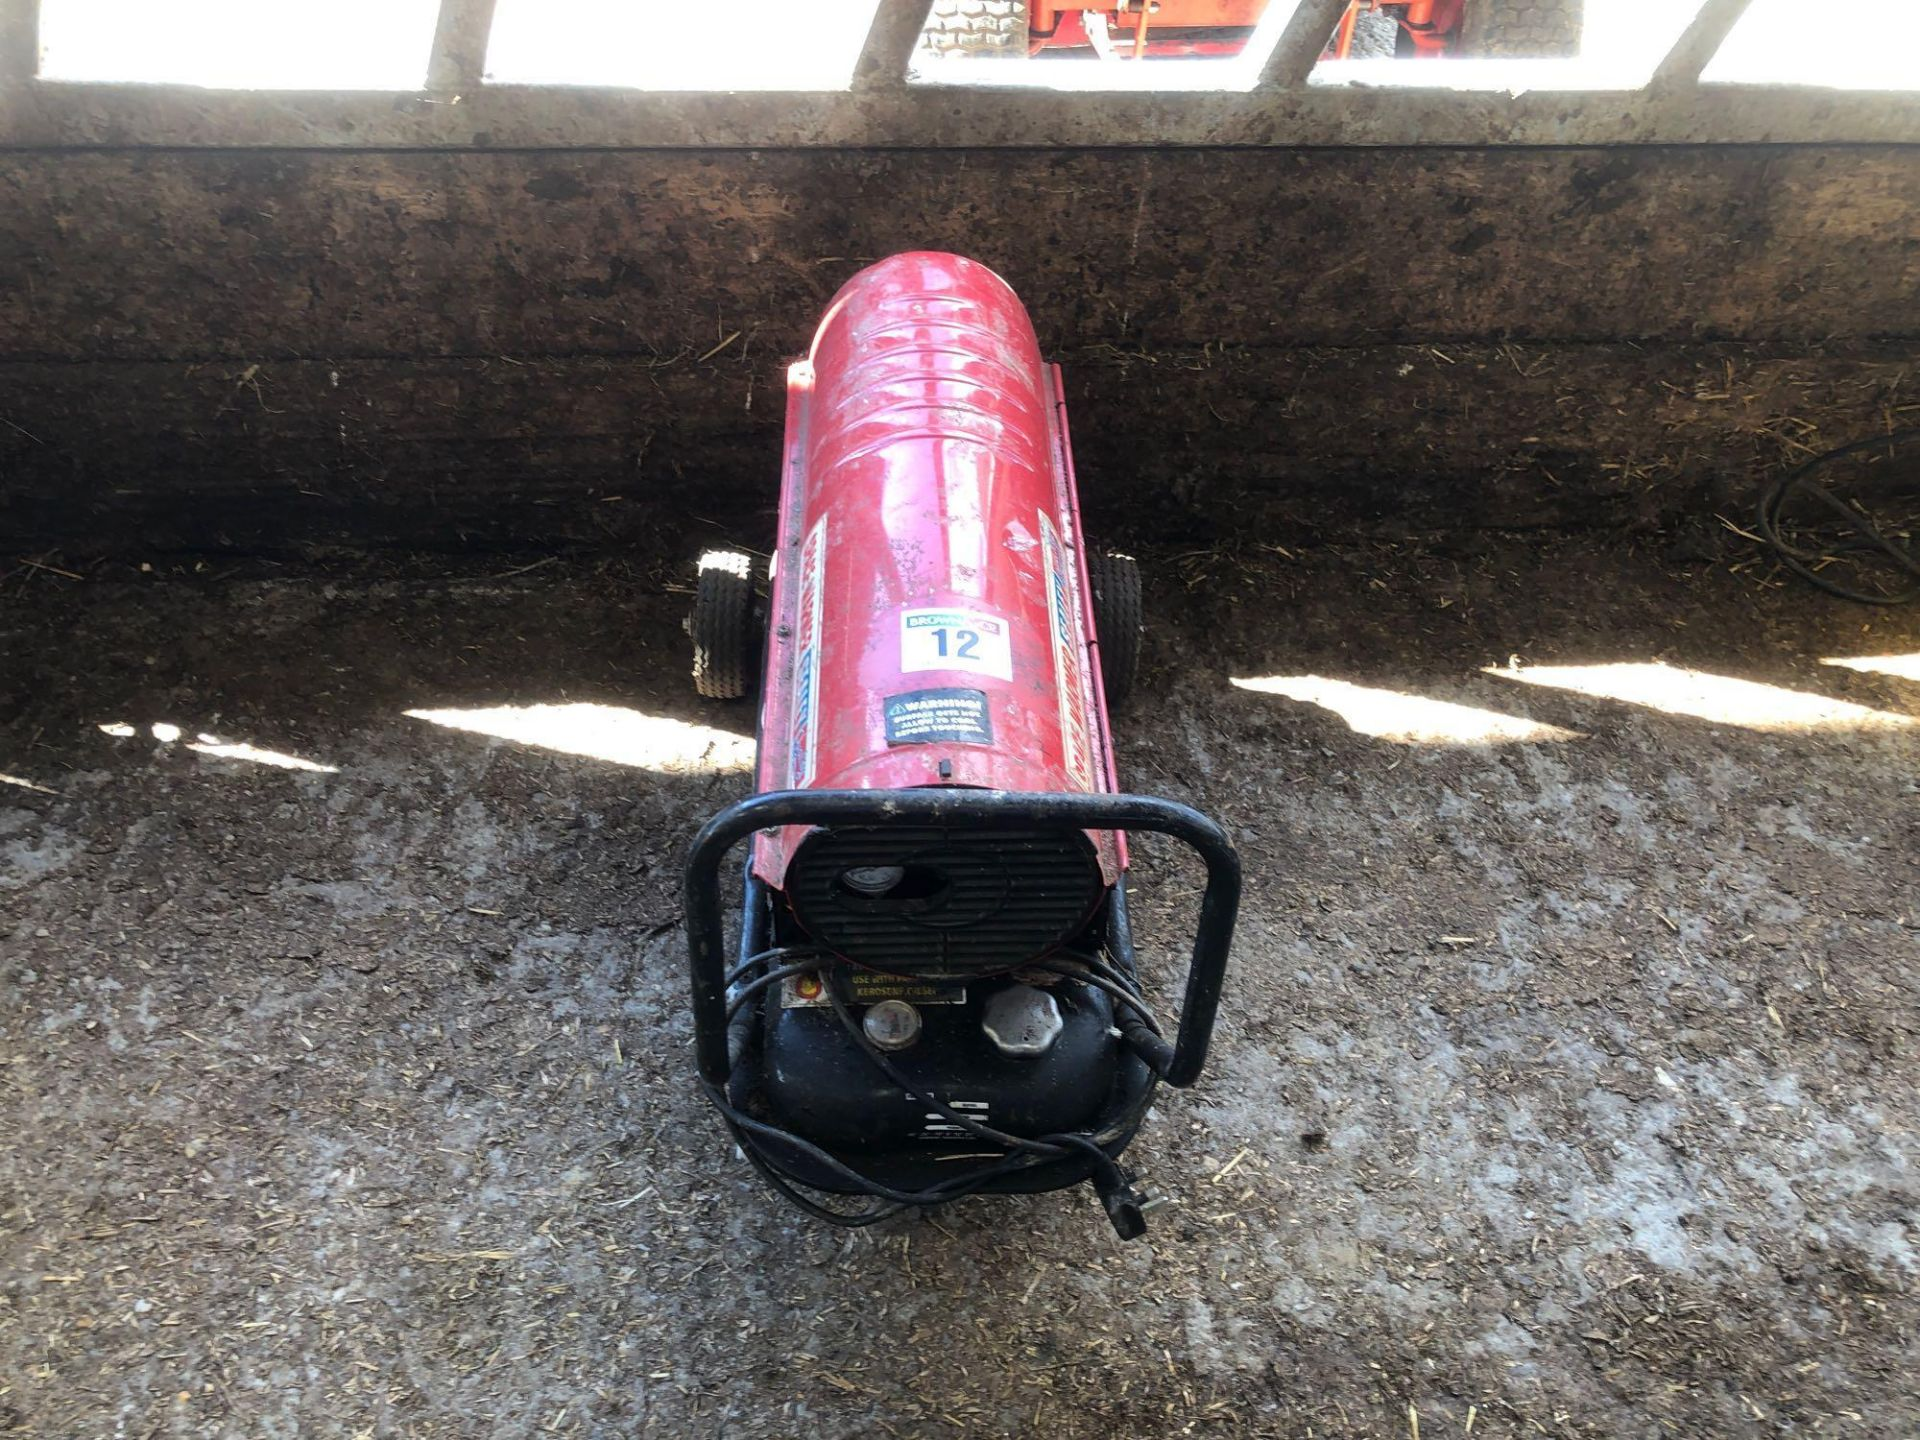 Lot 12 - Sealey space heater, single phase